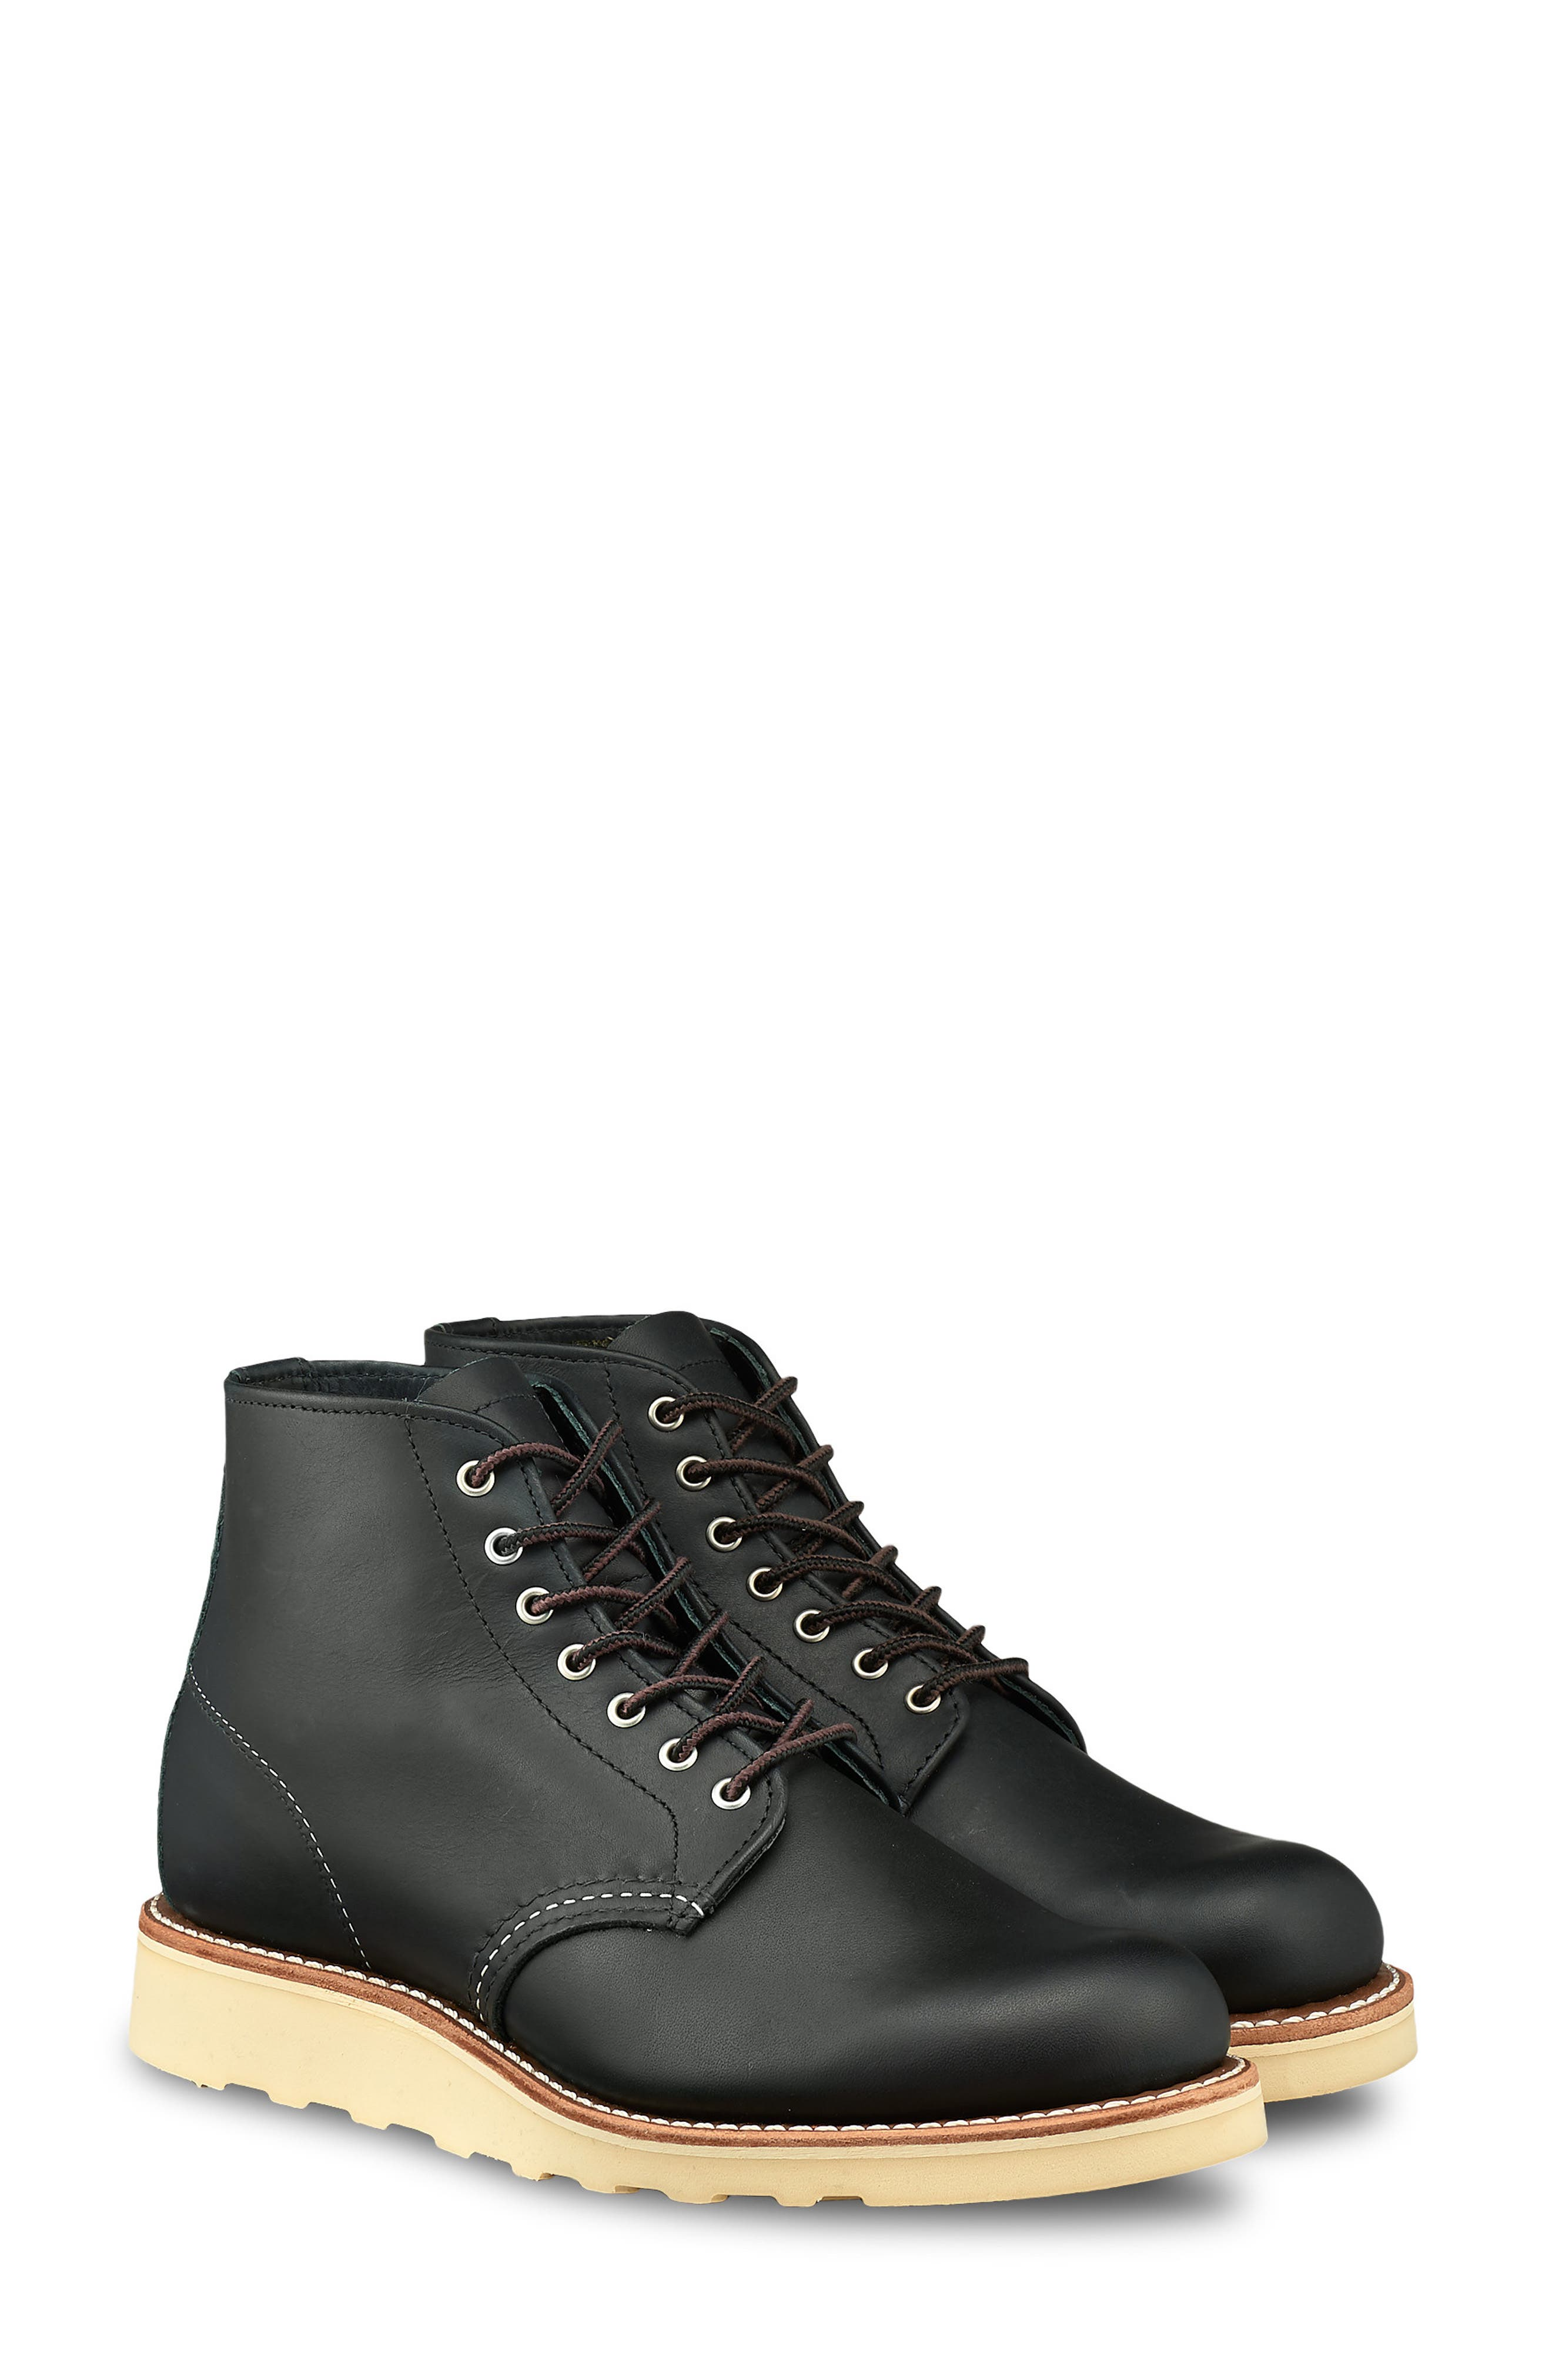 6-Inch Round Toe Boot, Main, color, BLACK BOUNDARY LEATHER